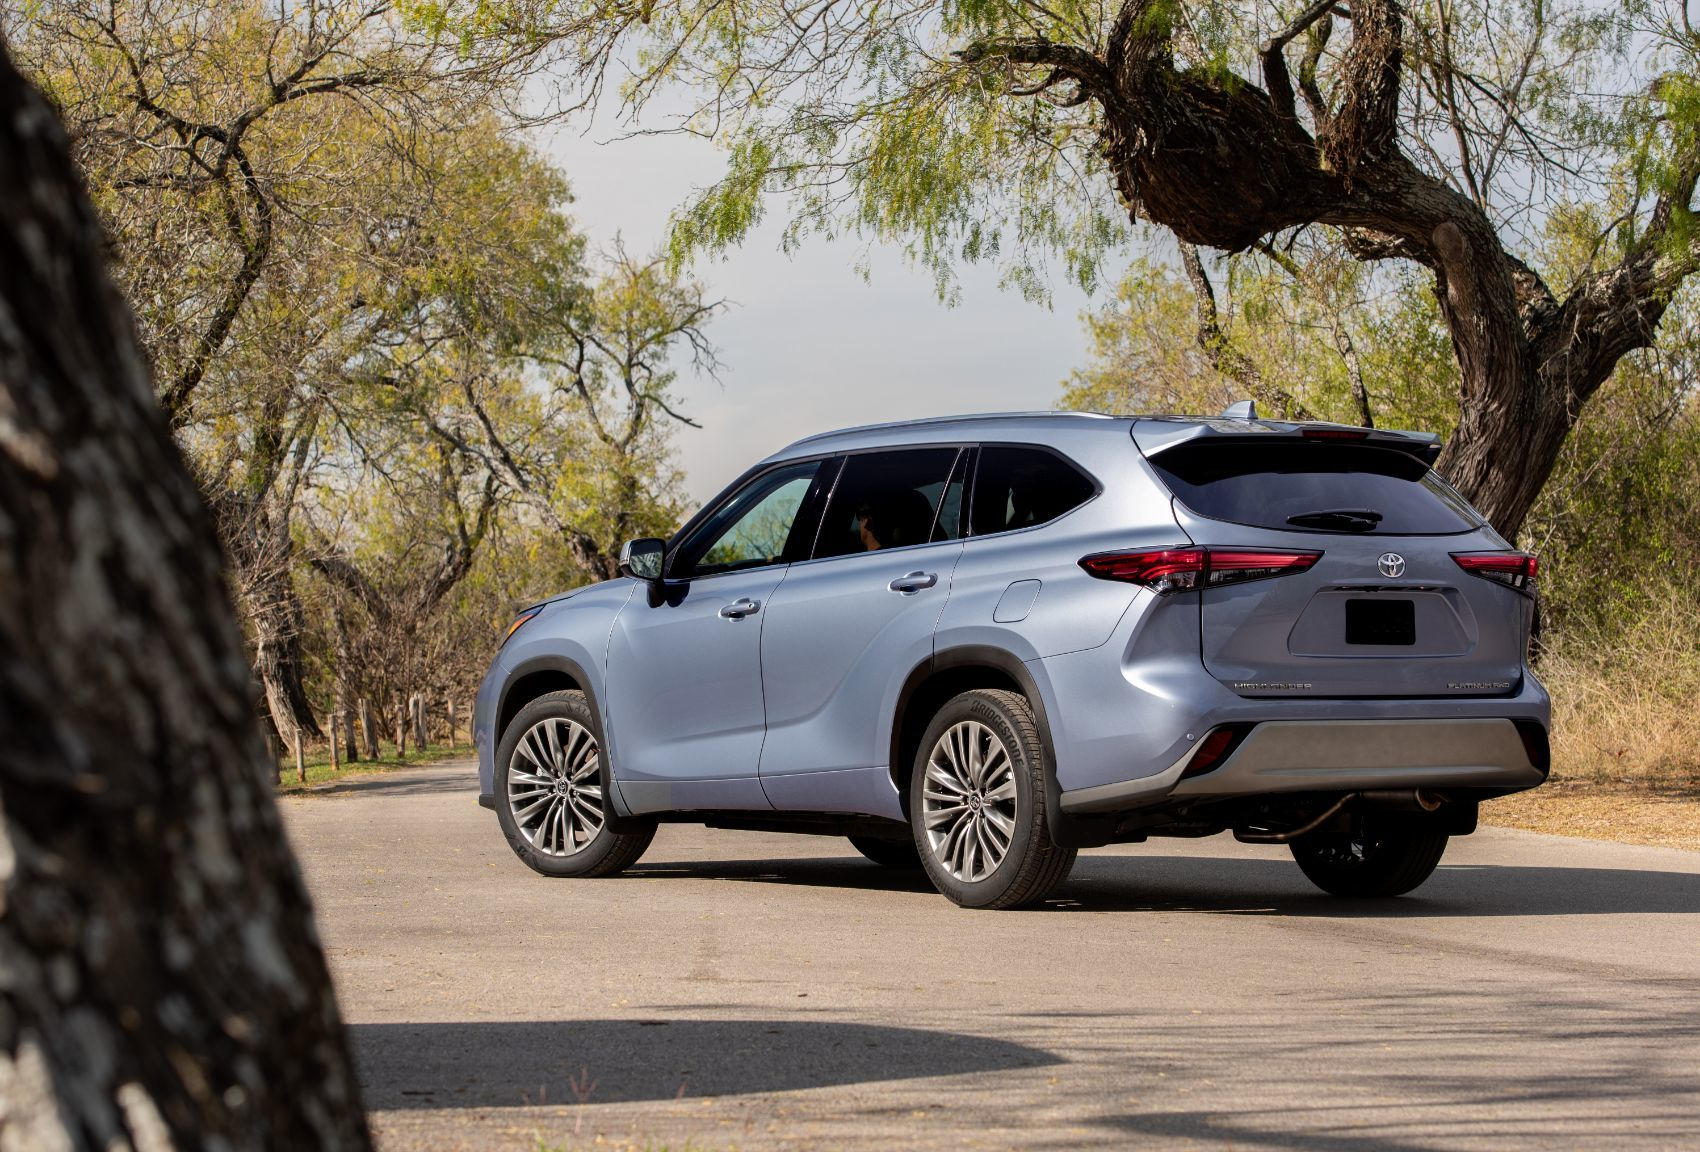 2020 toyota highlander: redesigned in the face of stiff